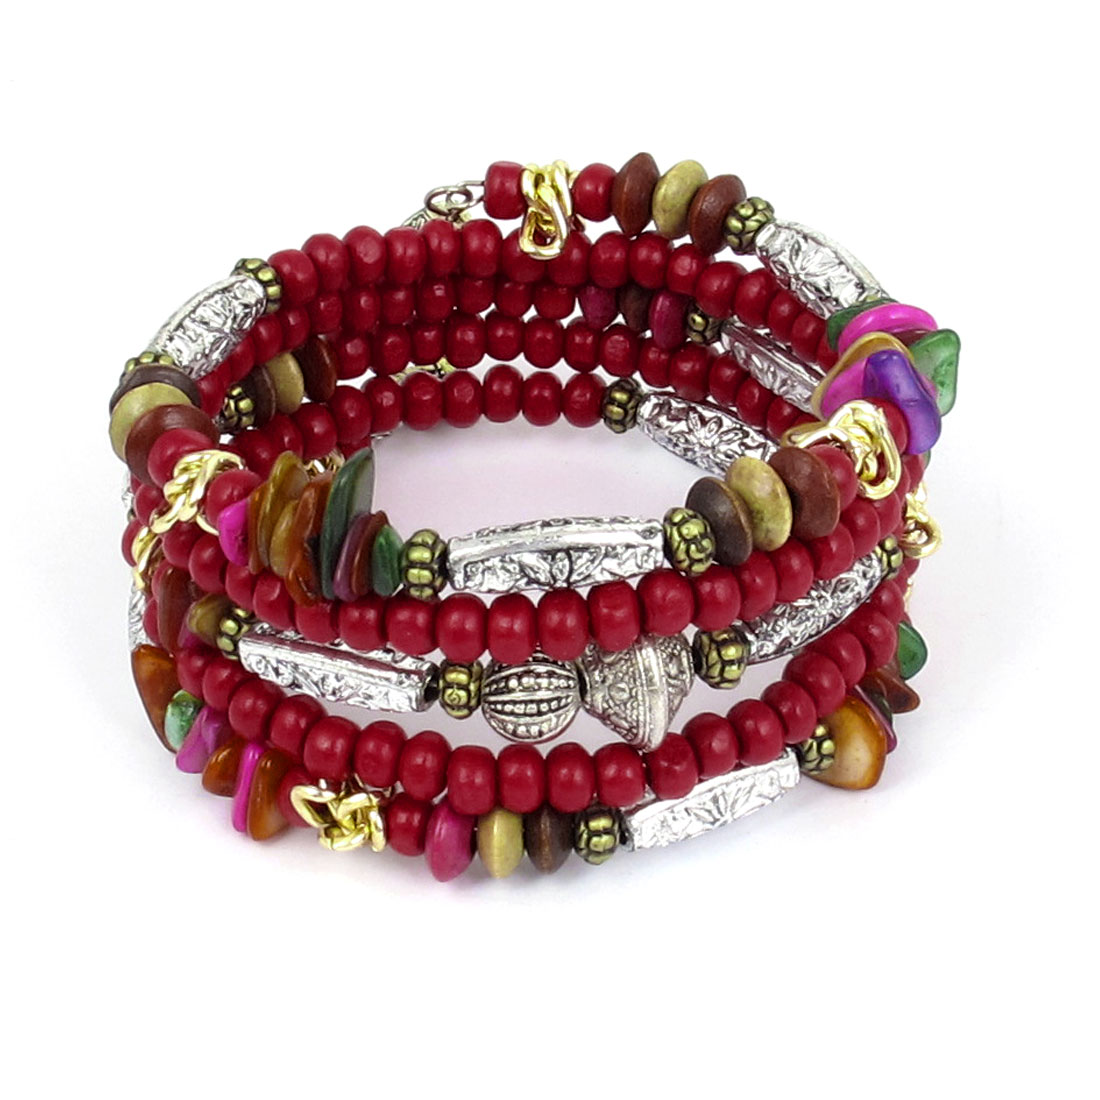 Lady National Style Handmade Wooden Beads Multi-layer Wrist Bangle Bracelet Red